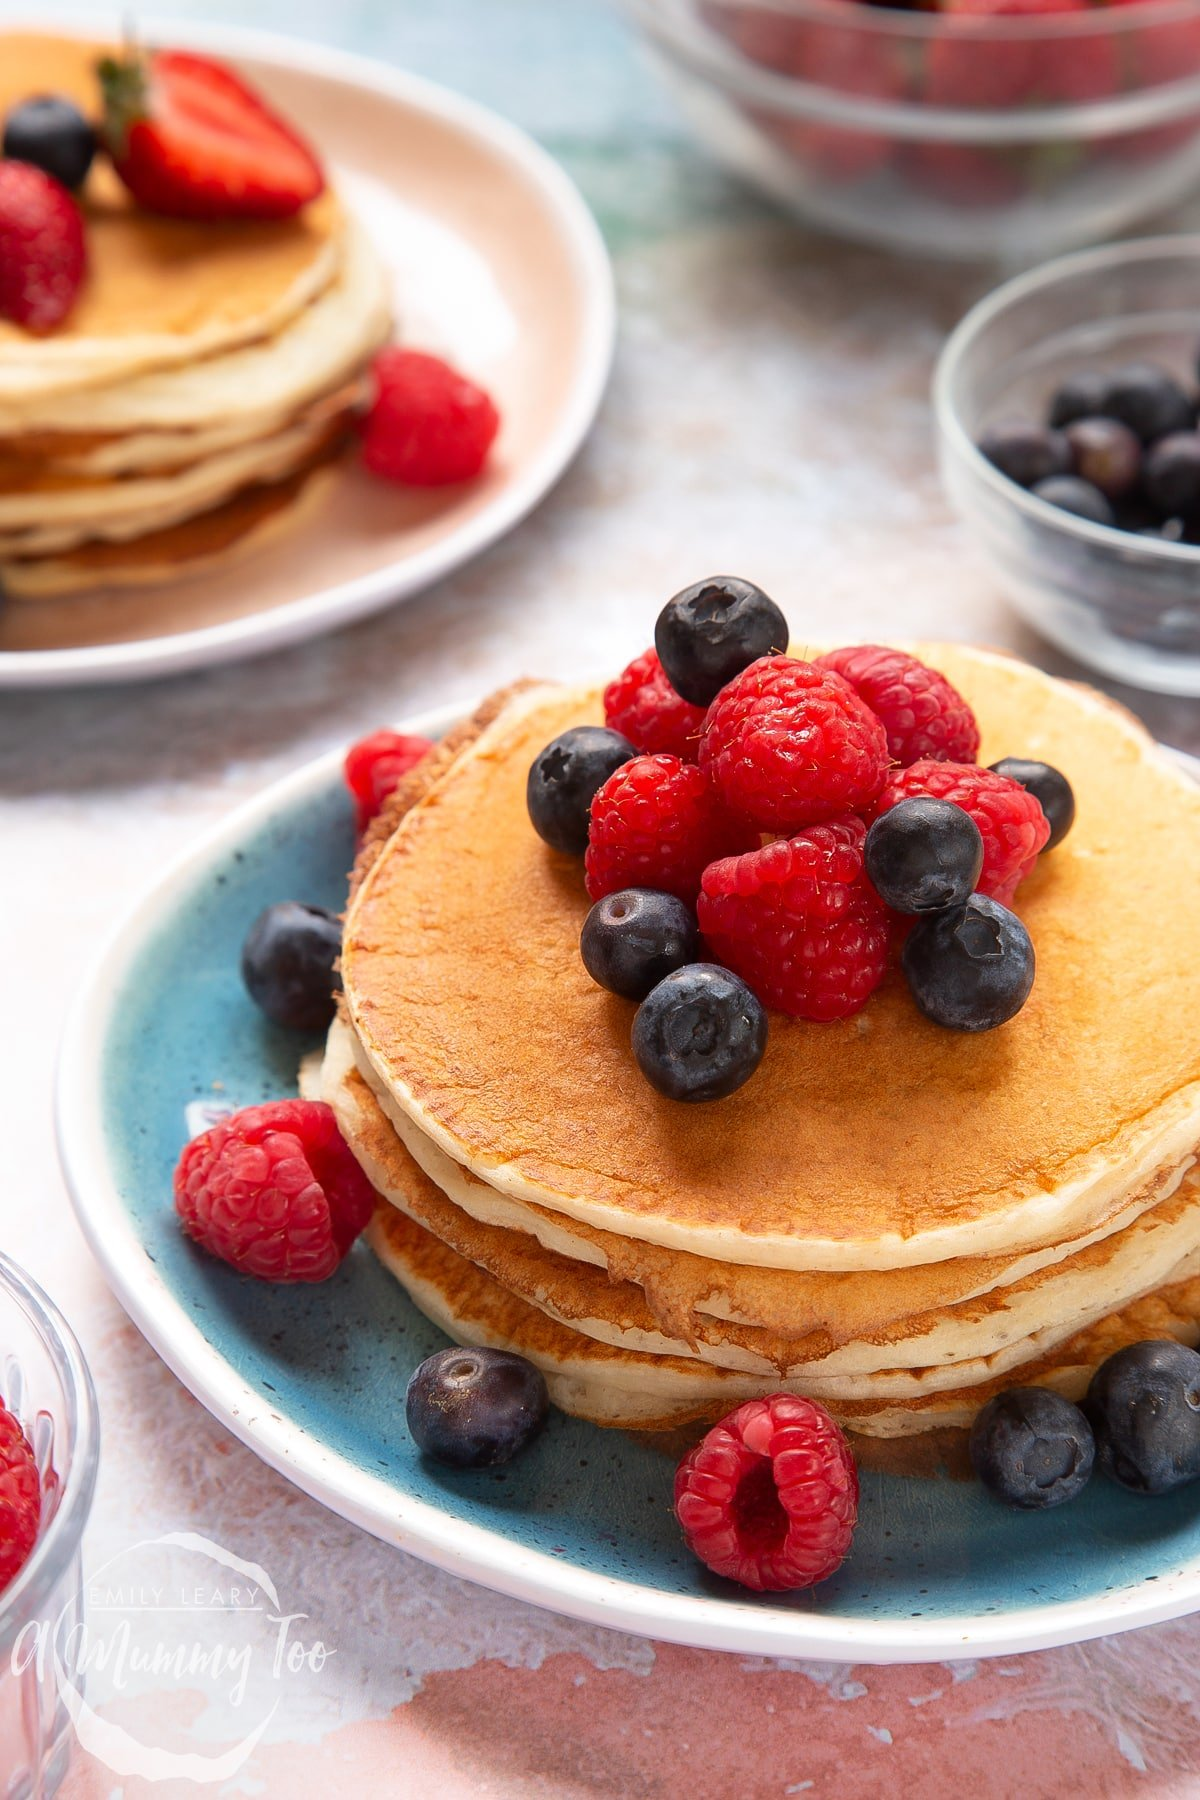 Stack of skyr pancakes on a blue plate. The pancakes are topped with blueberries and raspberries. Another stack of pancakes is shown on a pink plate in the background.